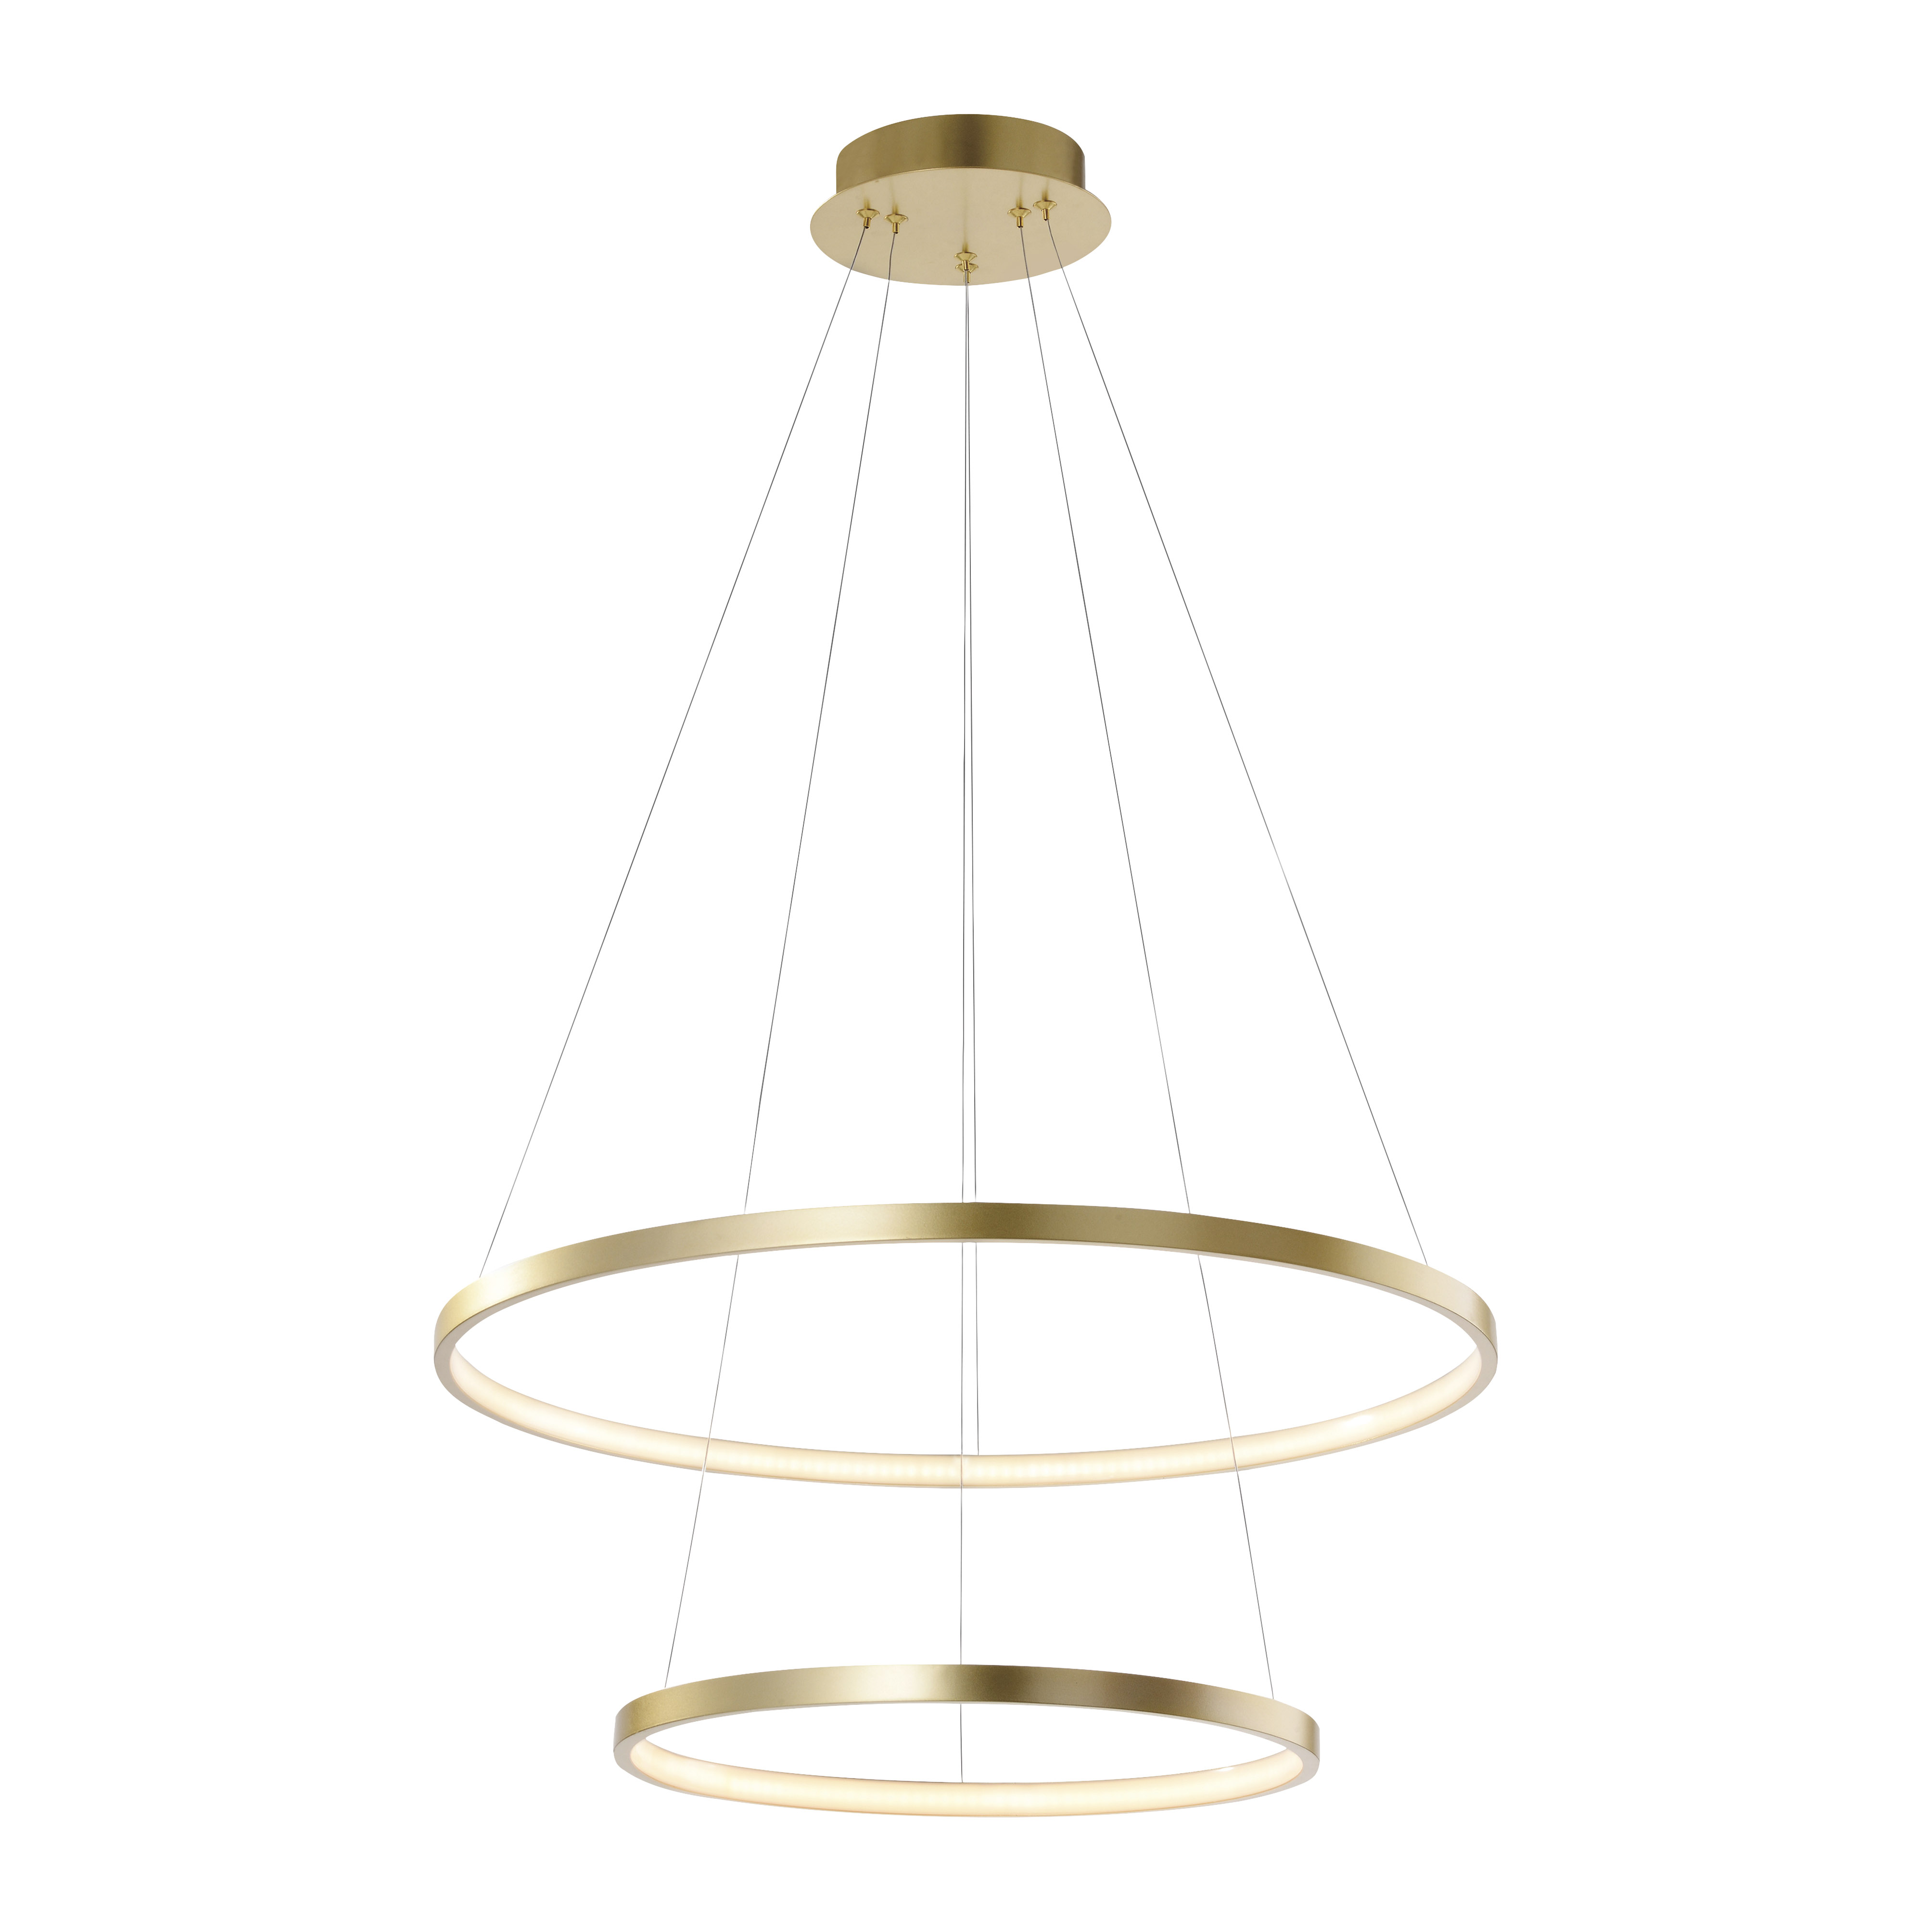 Moderne ring hanglamp goud incl. LED - Anella Duo